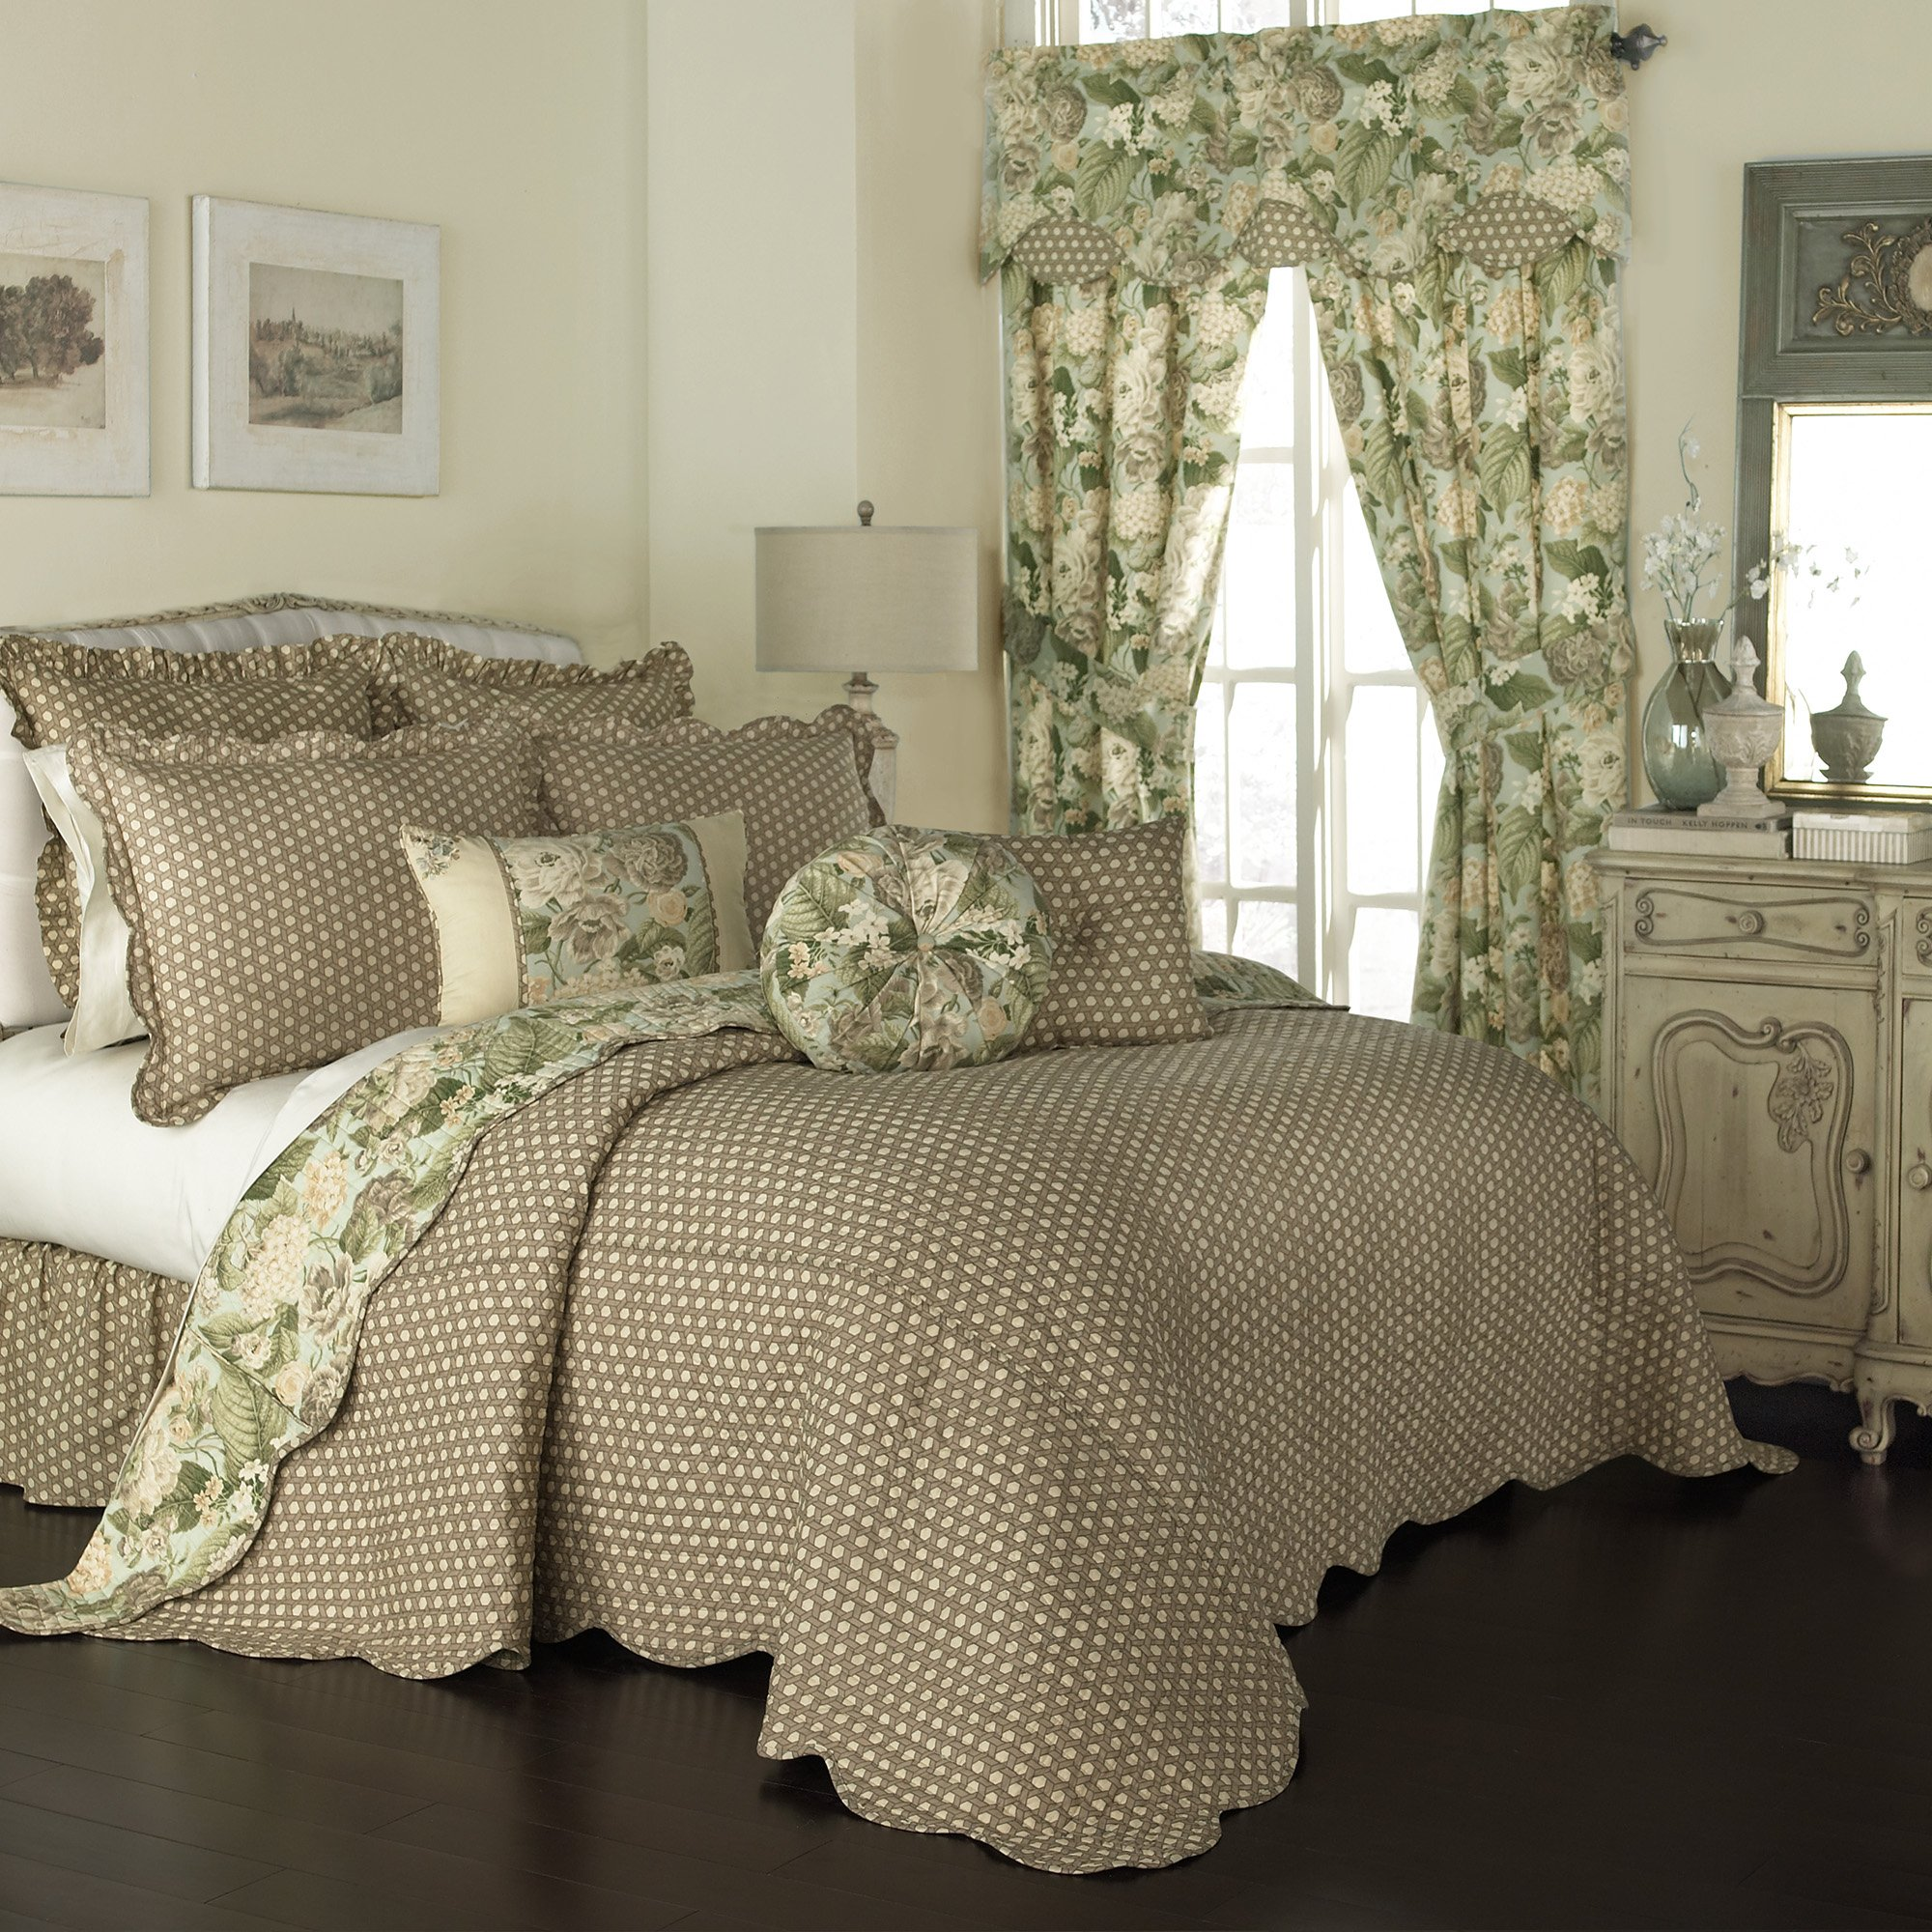 Waverly Garden Glory Bedspread Collection, 120x110, Mist